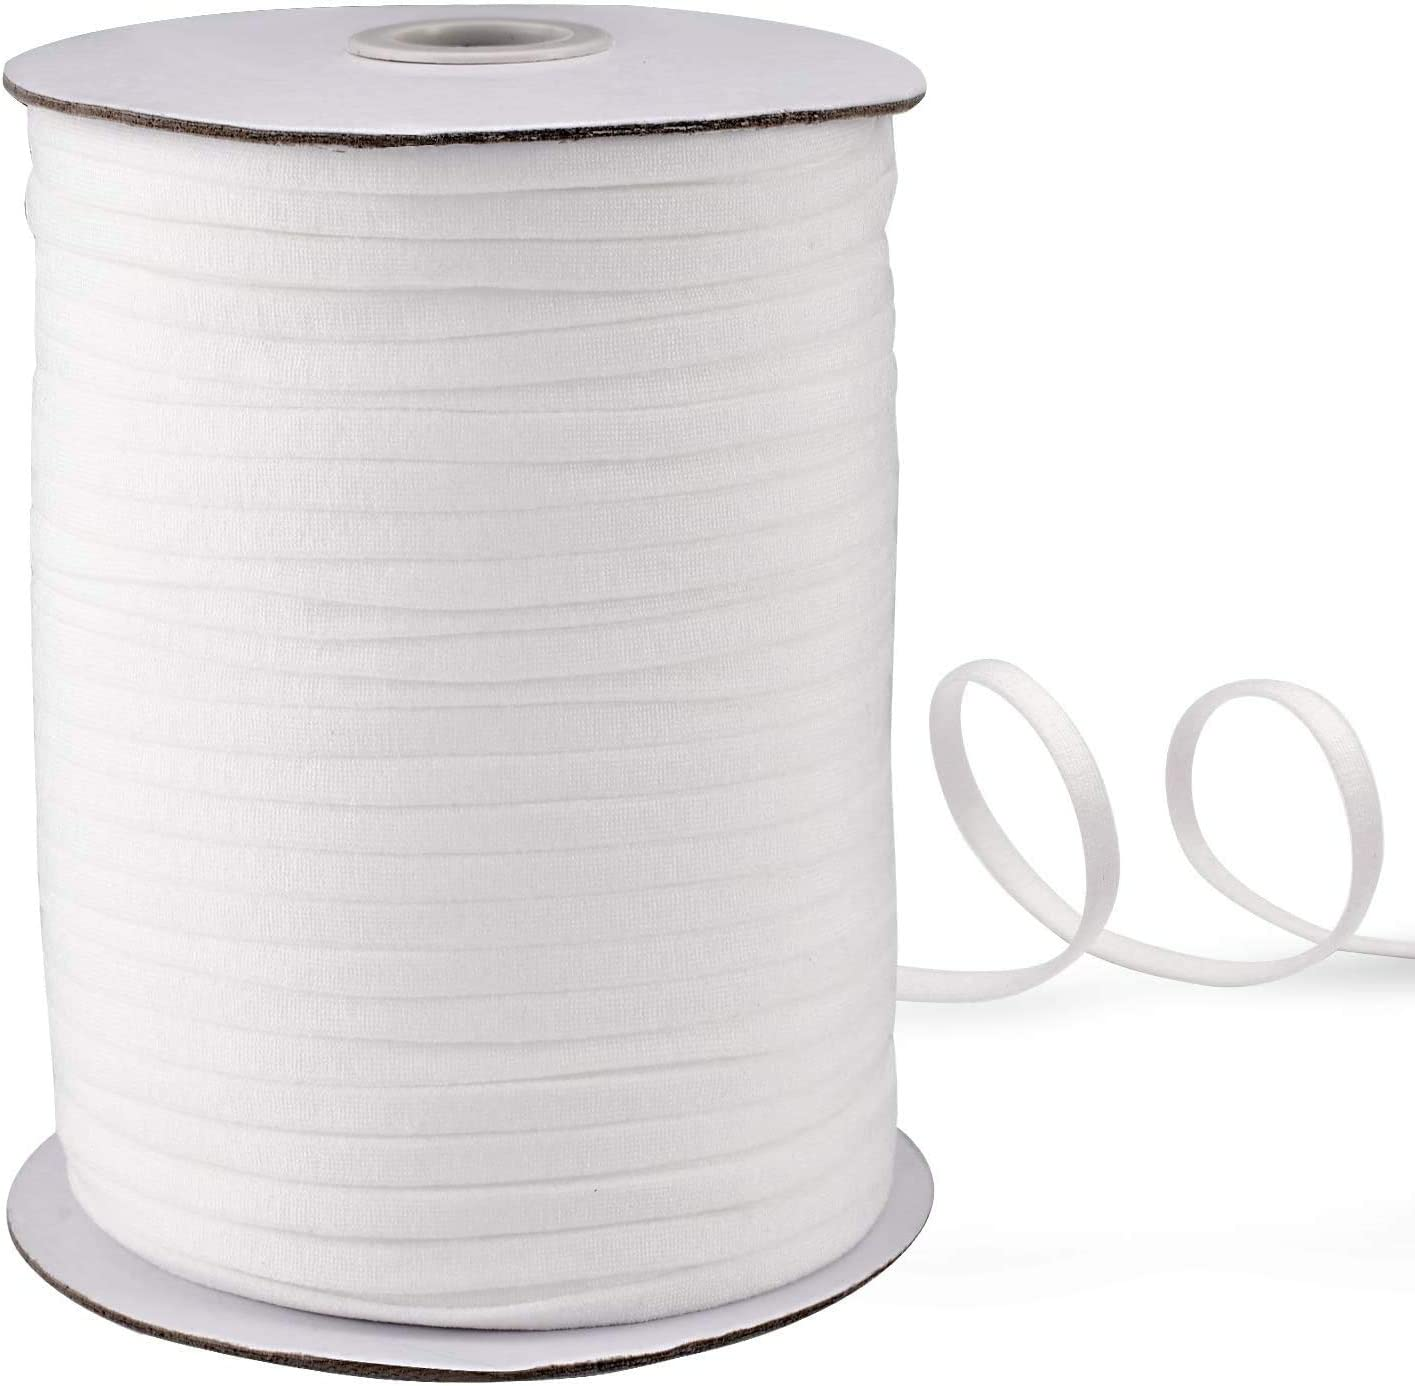 Elastic Bands for Sewing and Face Coverings for DIY 100 PCS 42 Yards,About 1//4 inch Elastic and Aluminum Strips